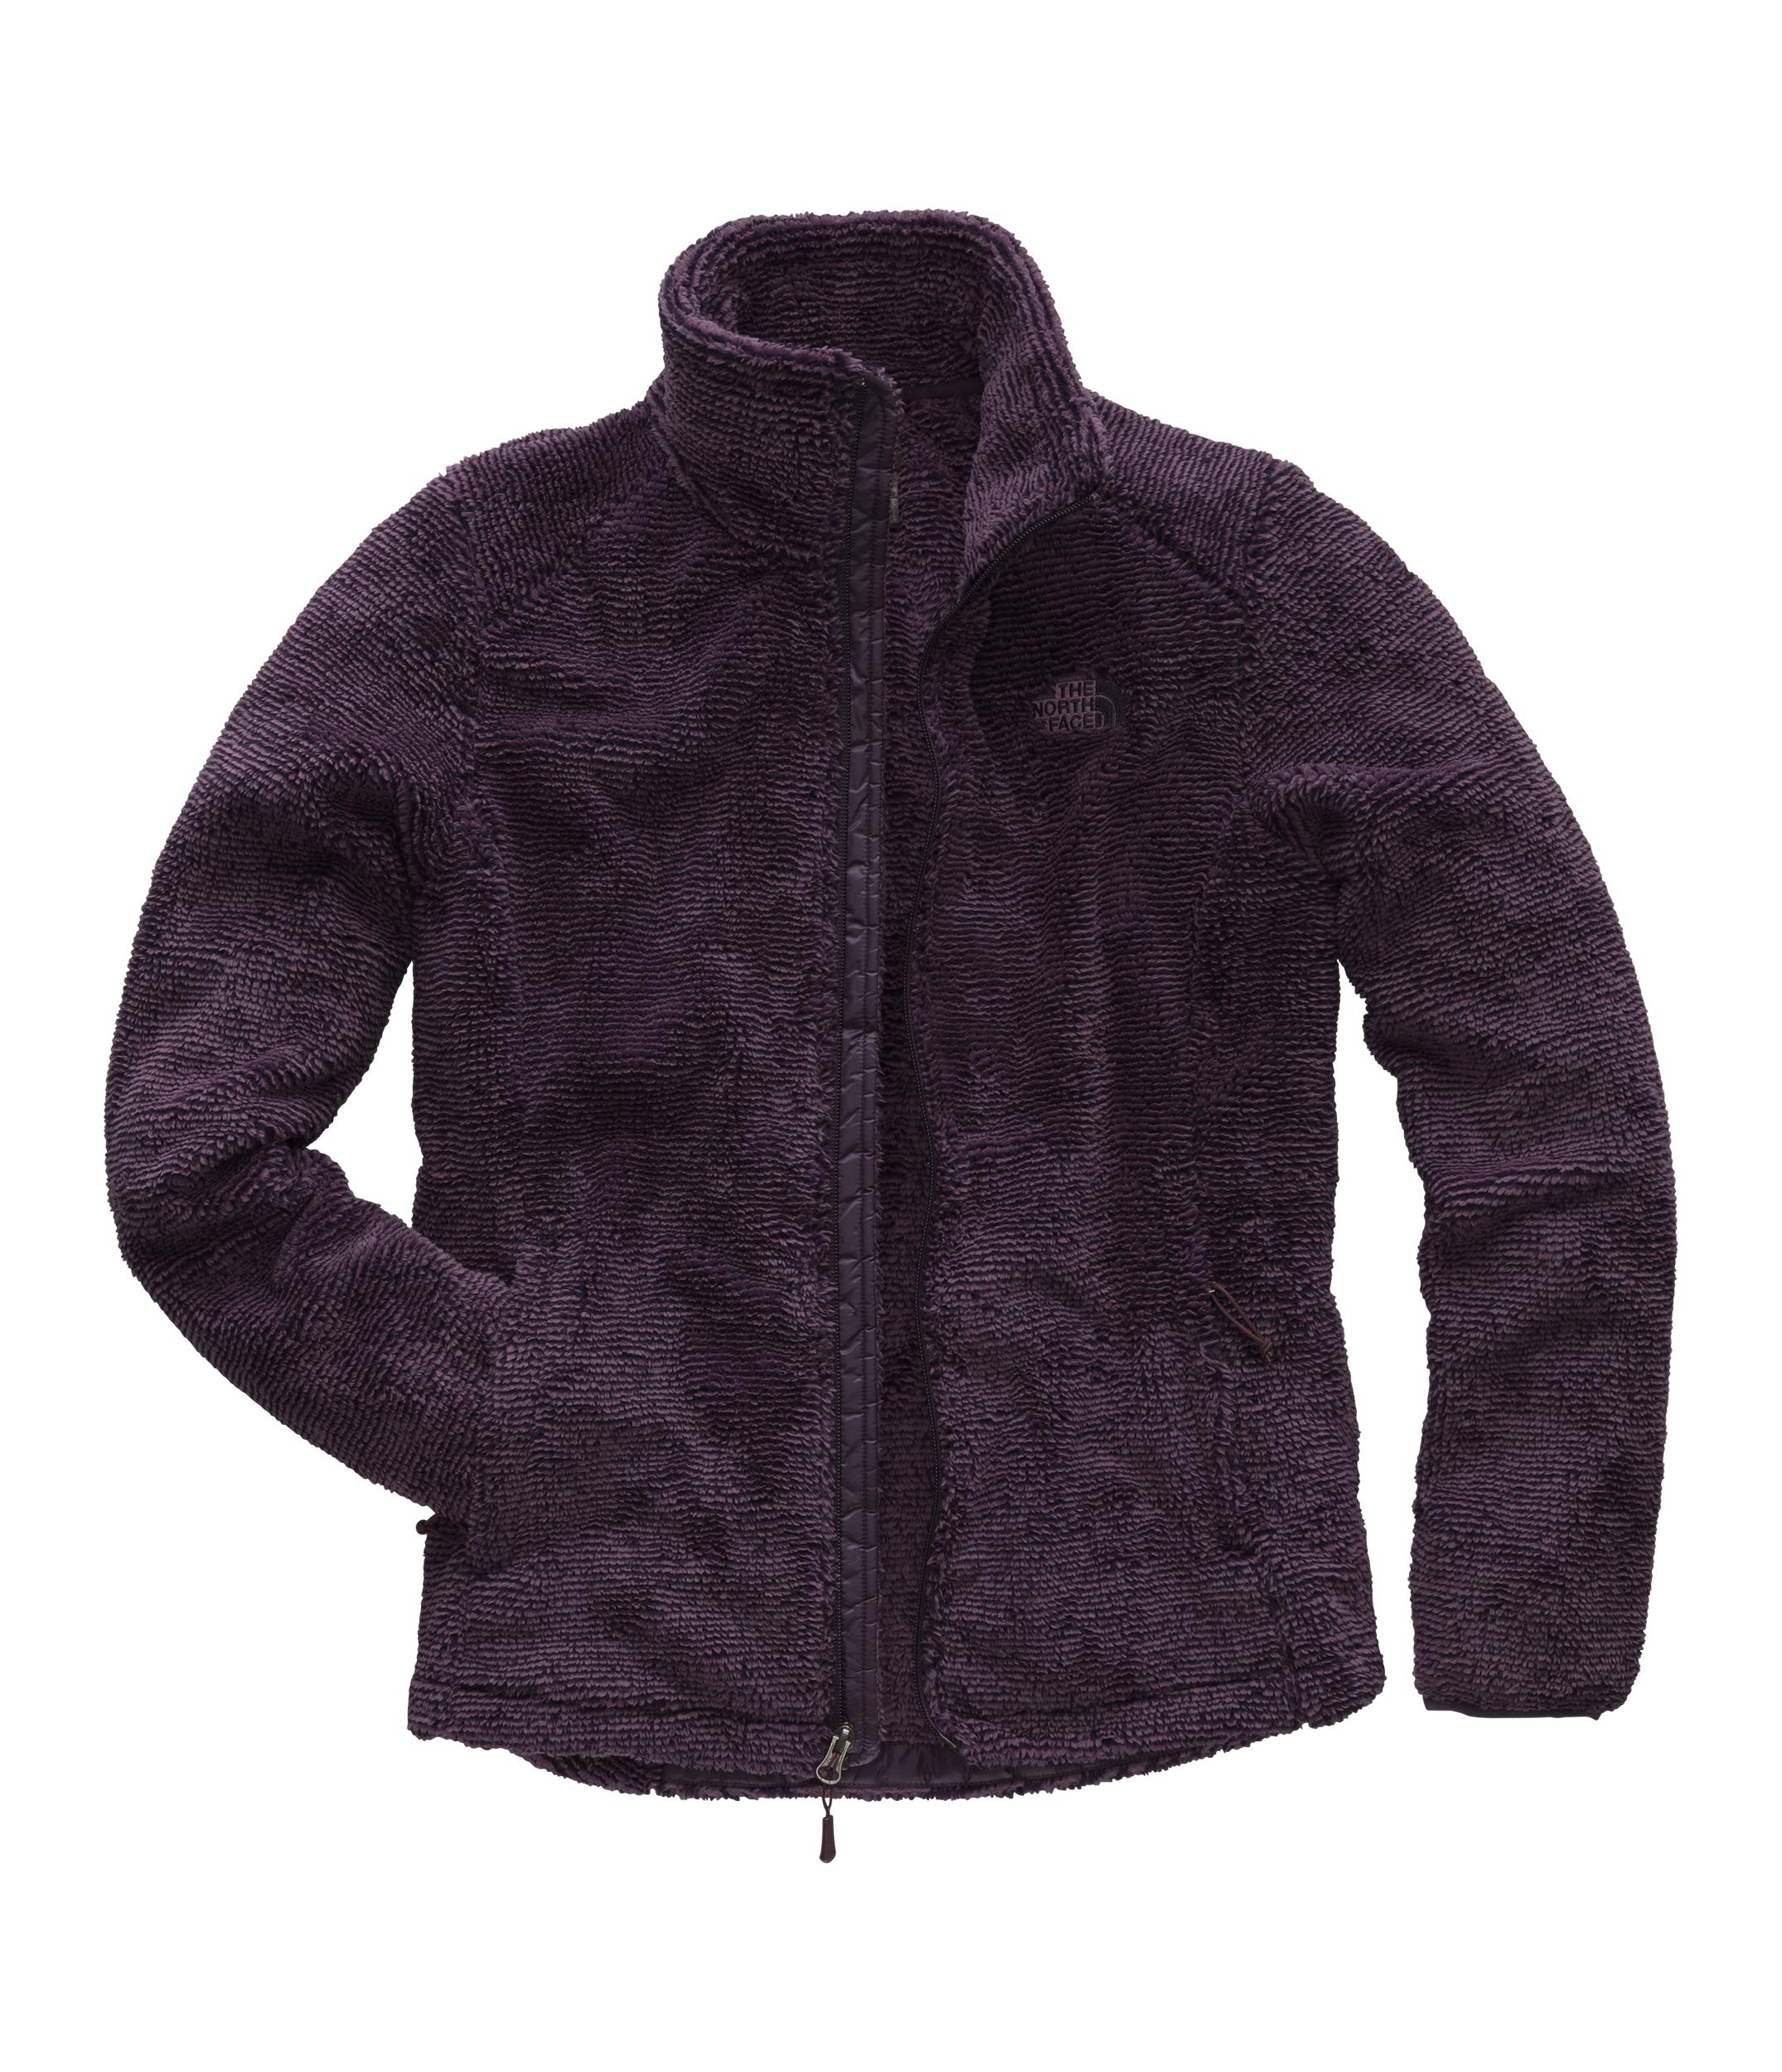 The North Face Women's Osito 2 Jacket - Galaxy Purple - XS by The North Face